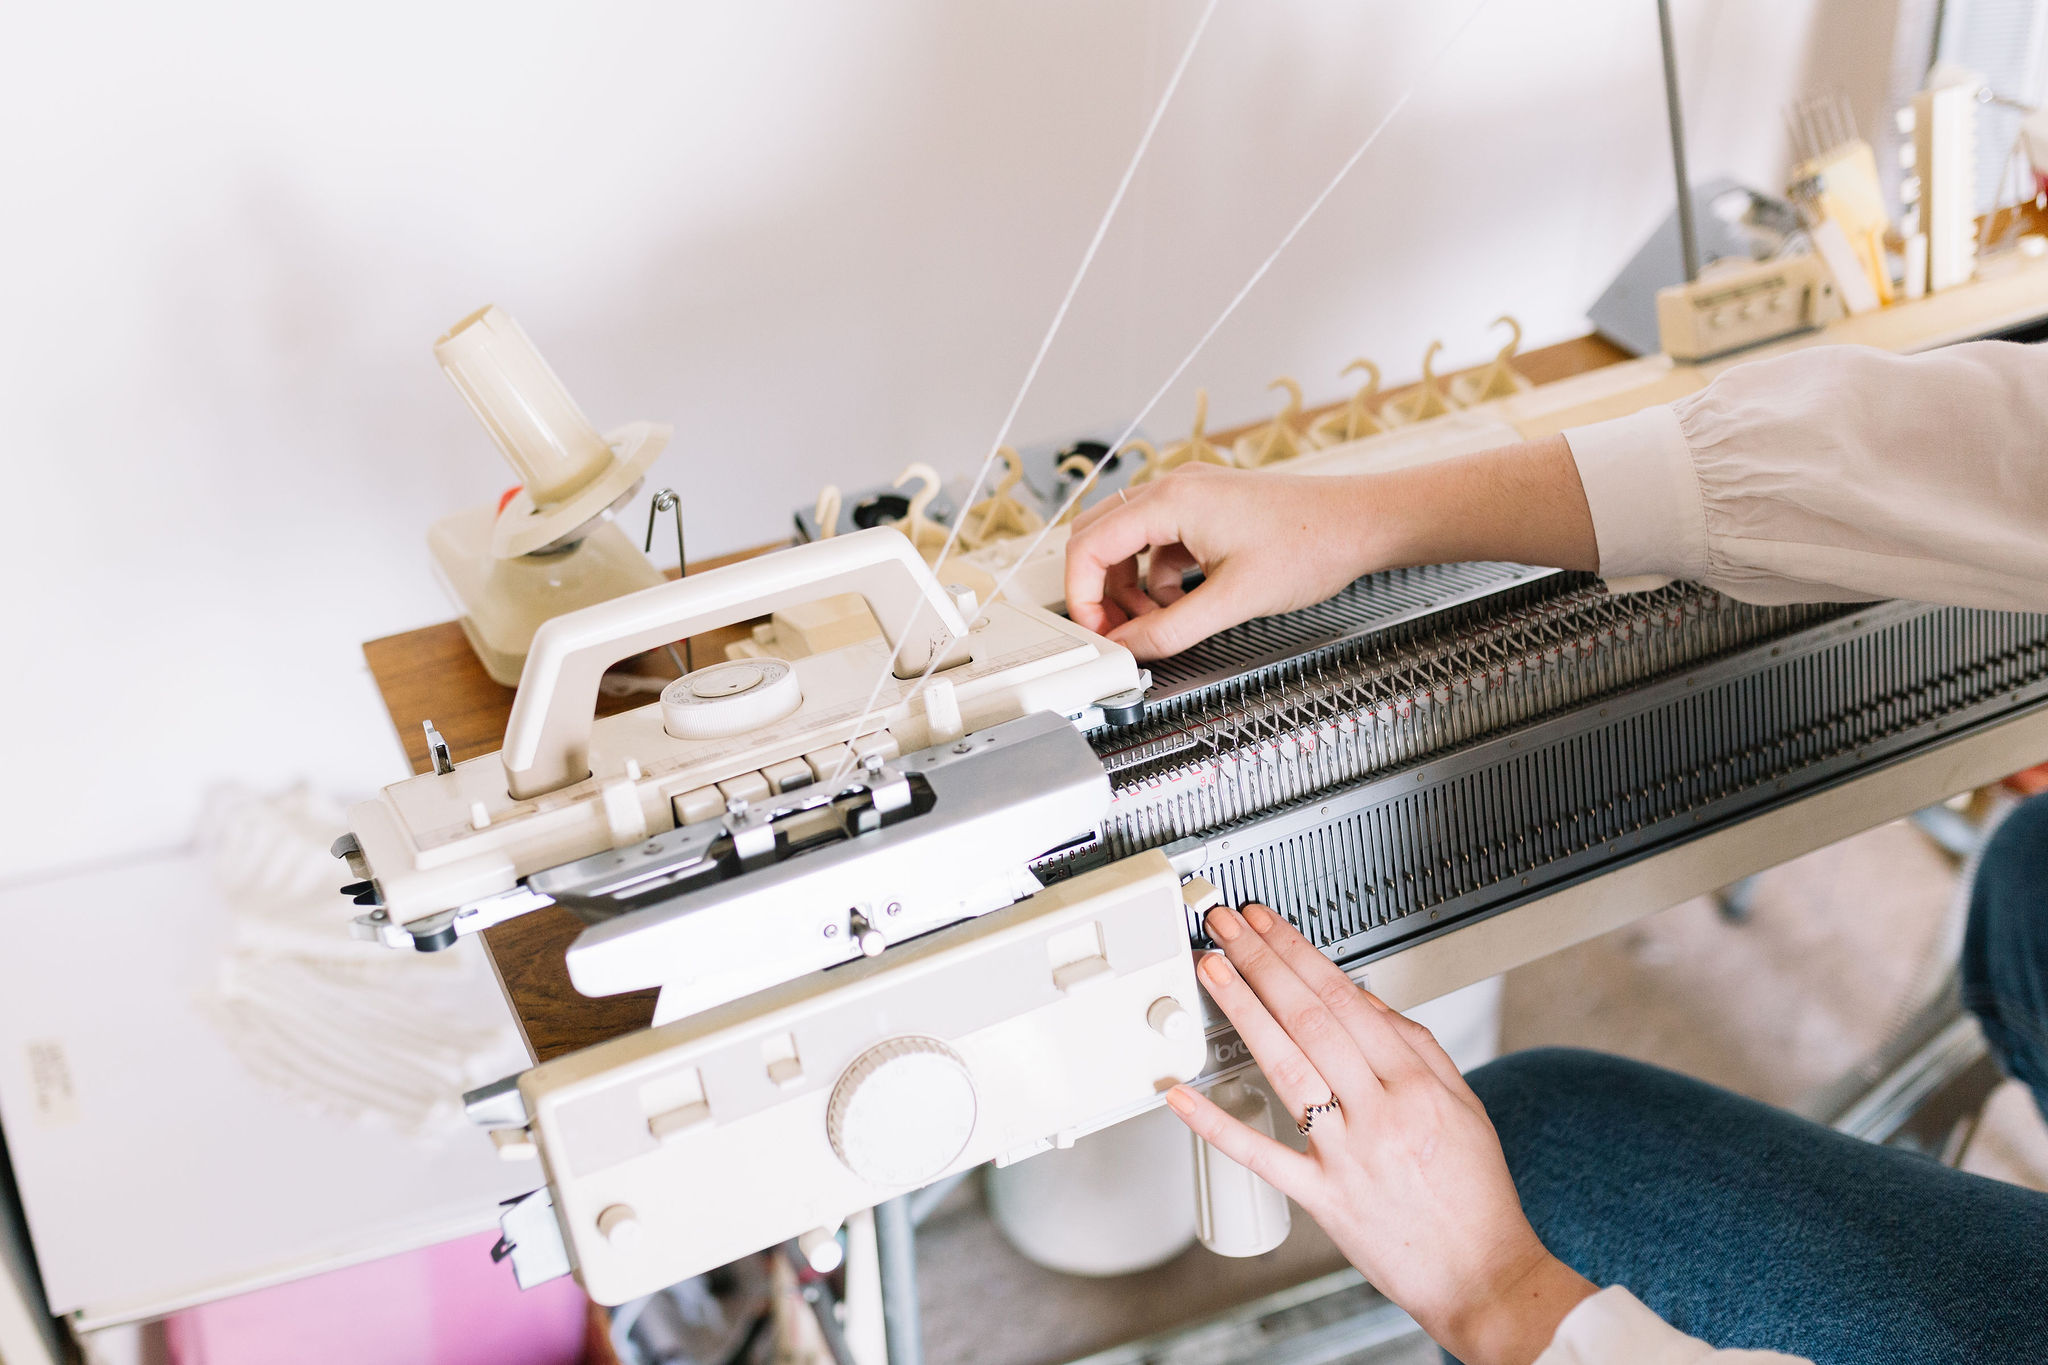 brother knitting machine with ribber being operated by Amber Hards